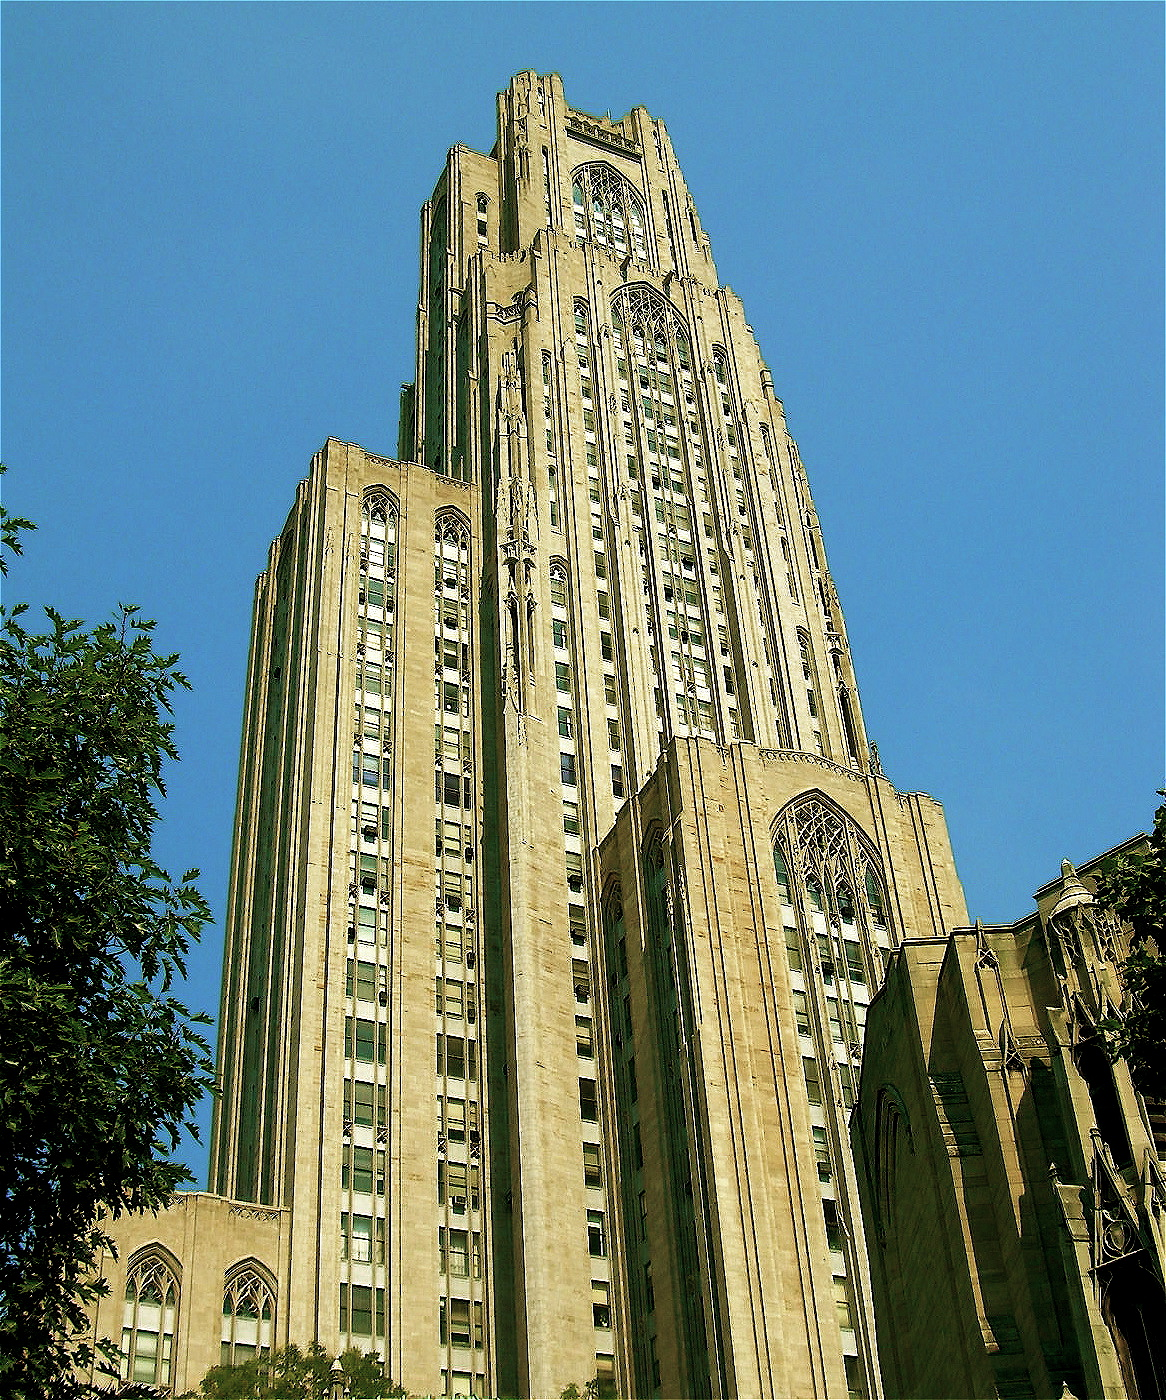 Filethe Cathedral Of Learning At The University Of. Tours Of Brazil And Argentina. Top Rated Merchant Services Web Hosting Plus. Dopamine And Drug Addiction Horse Show Games. Umd School Of Engineering Top Usa Gold Buyers. Breast Cancer Lung Metastasis. Ucf College Application Home Loan Consultants. Life Insurance Pre Existing Medical Conditions. University Of Maryland University College Online Mba